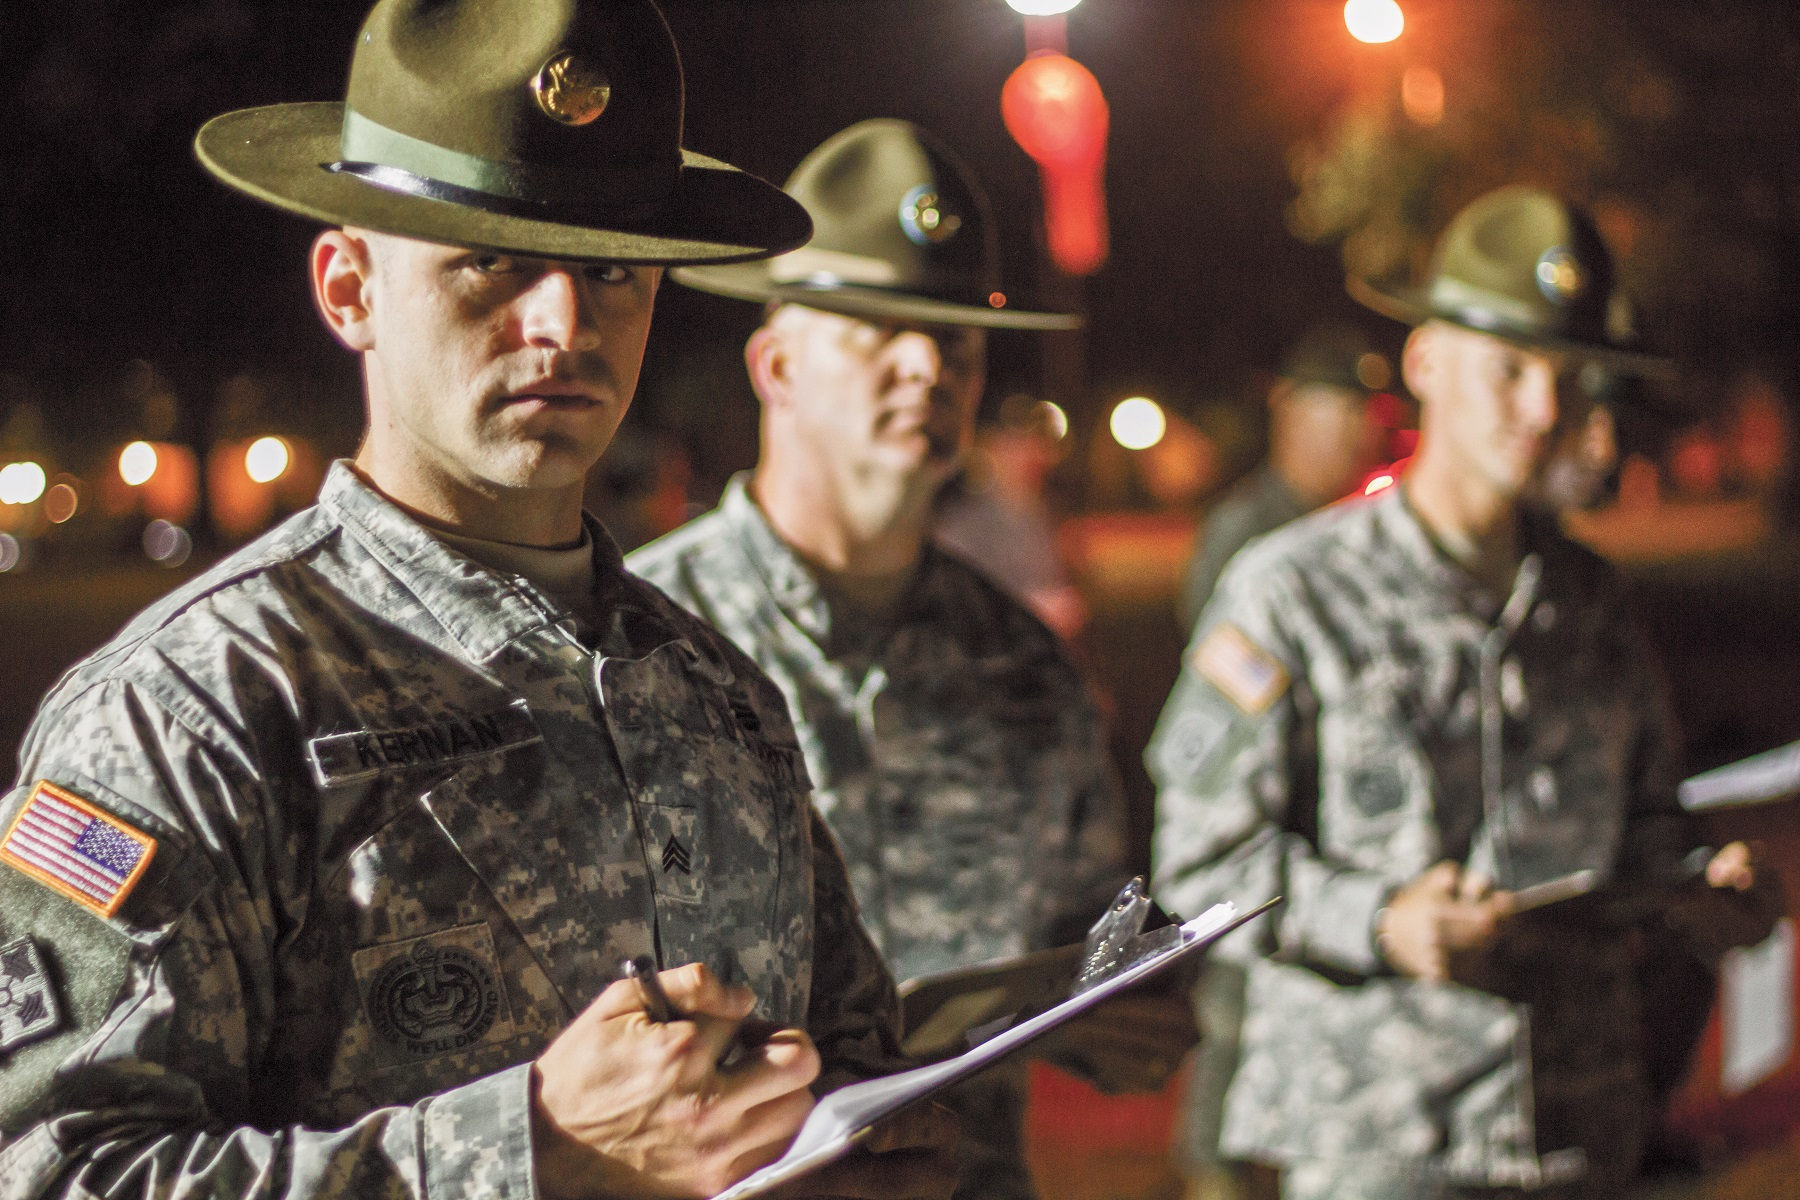 TRADOC CSM: Bring drill sergeants back to AIT